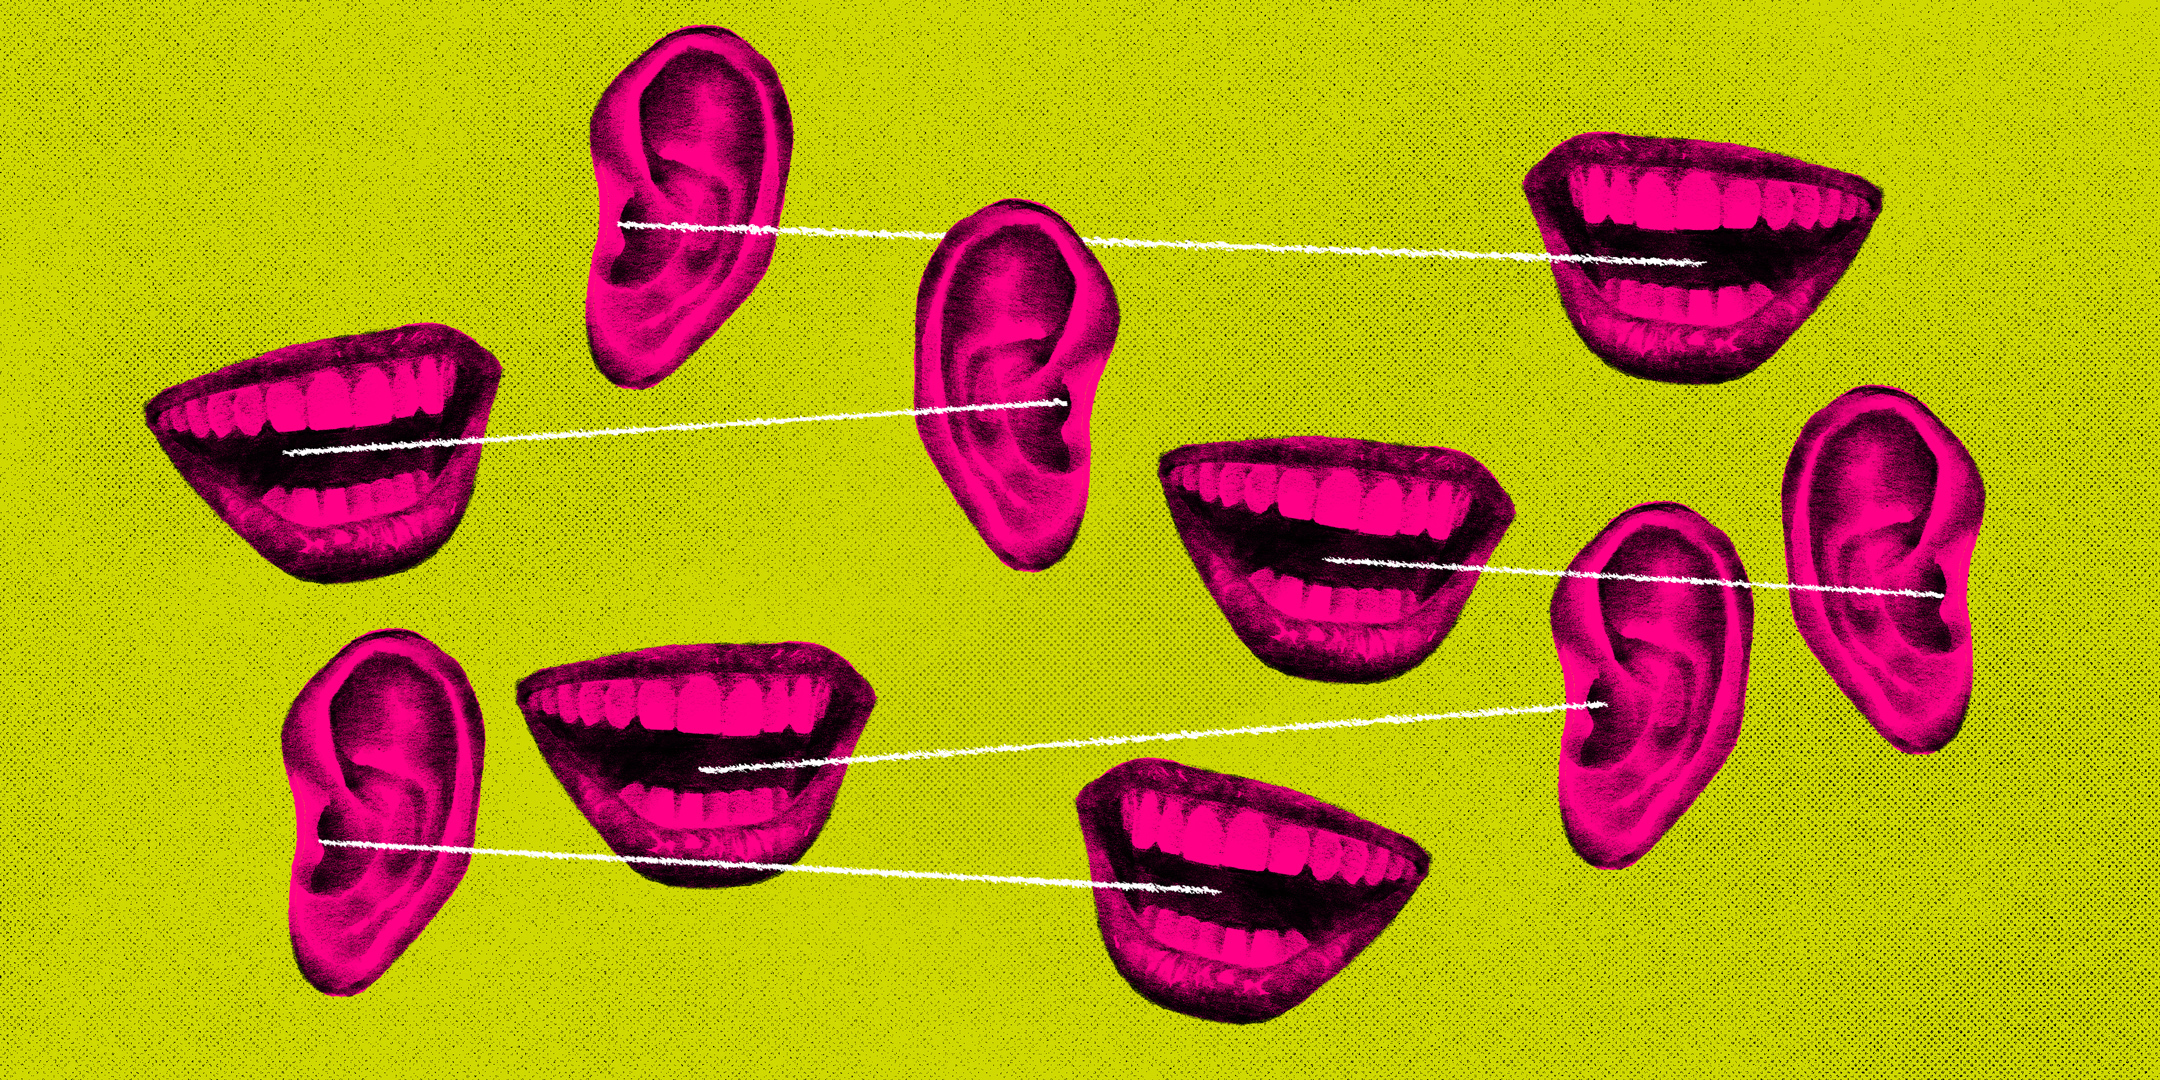 Ear and mouth graphics connected by string